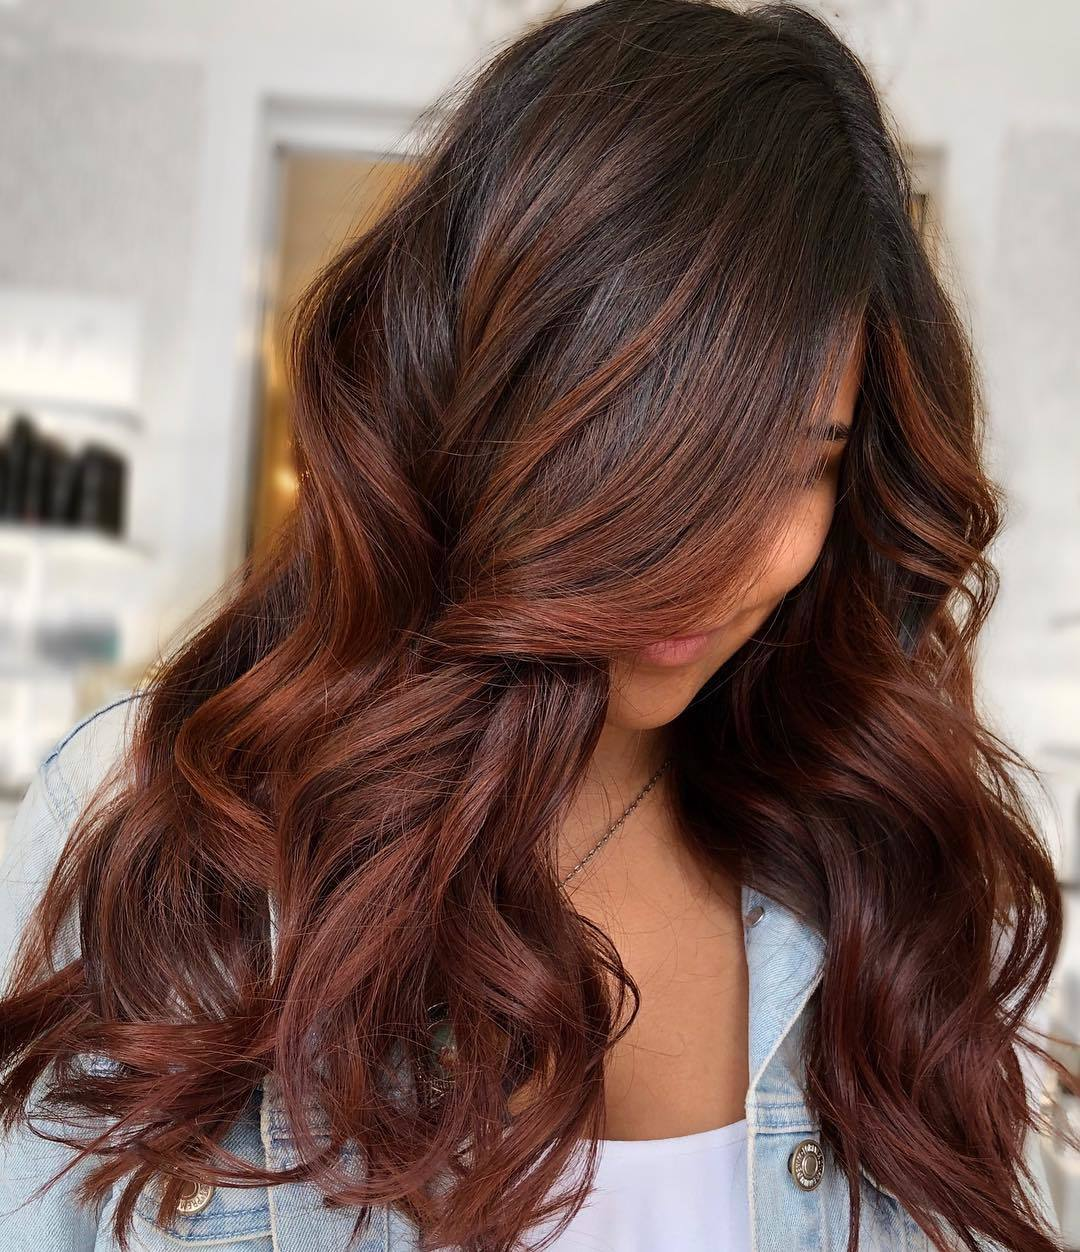 Woman with brown hair with reddish chestnut hair highlights